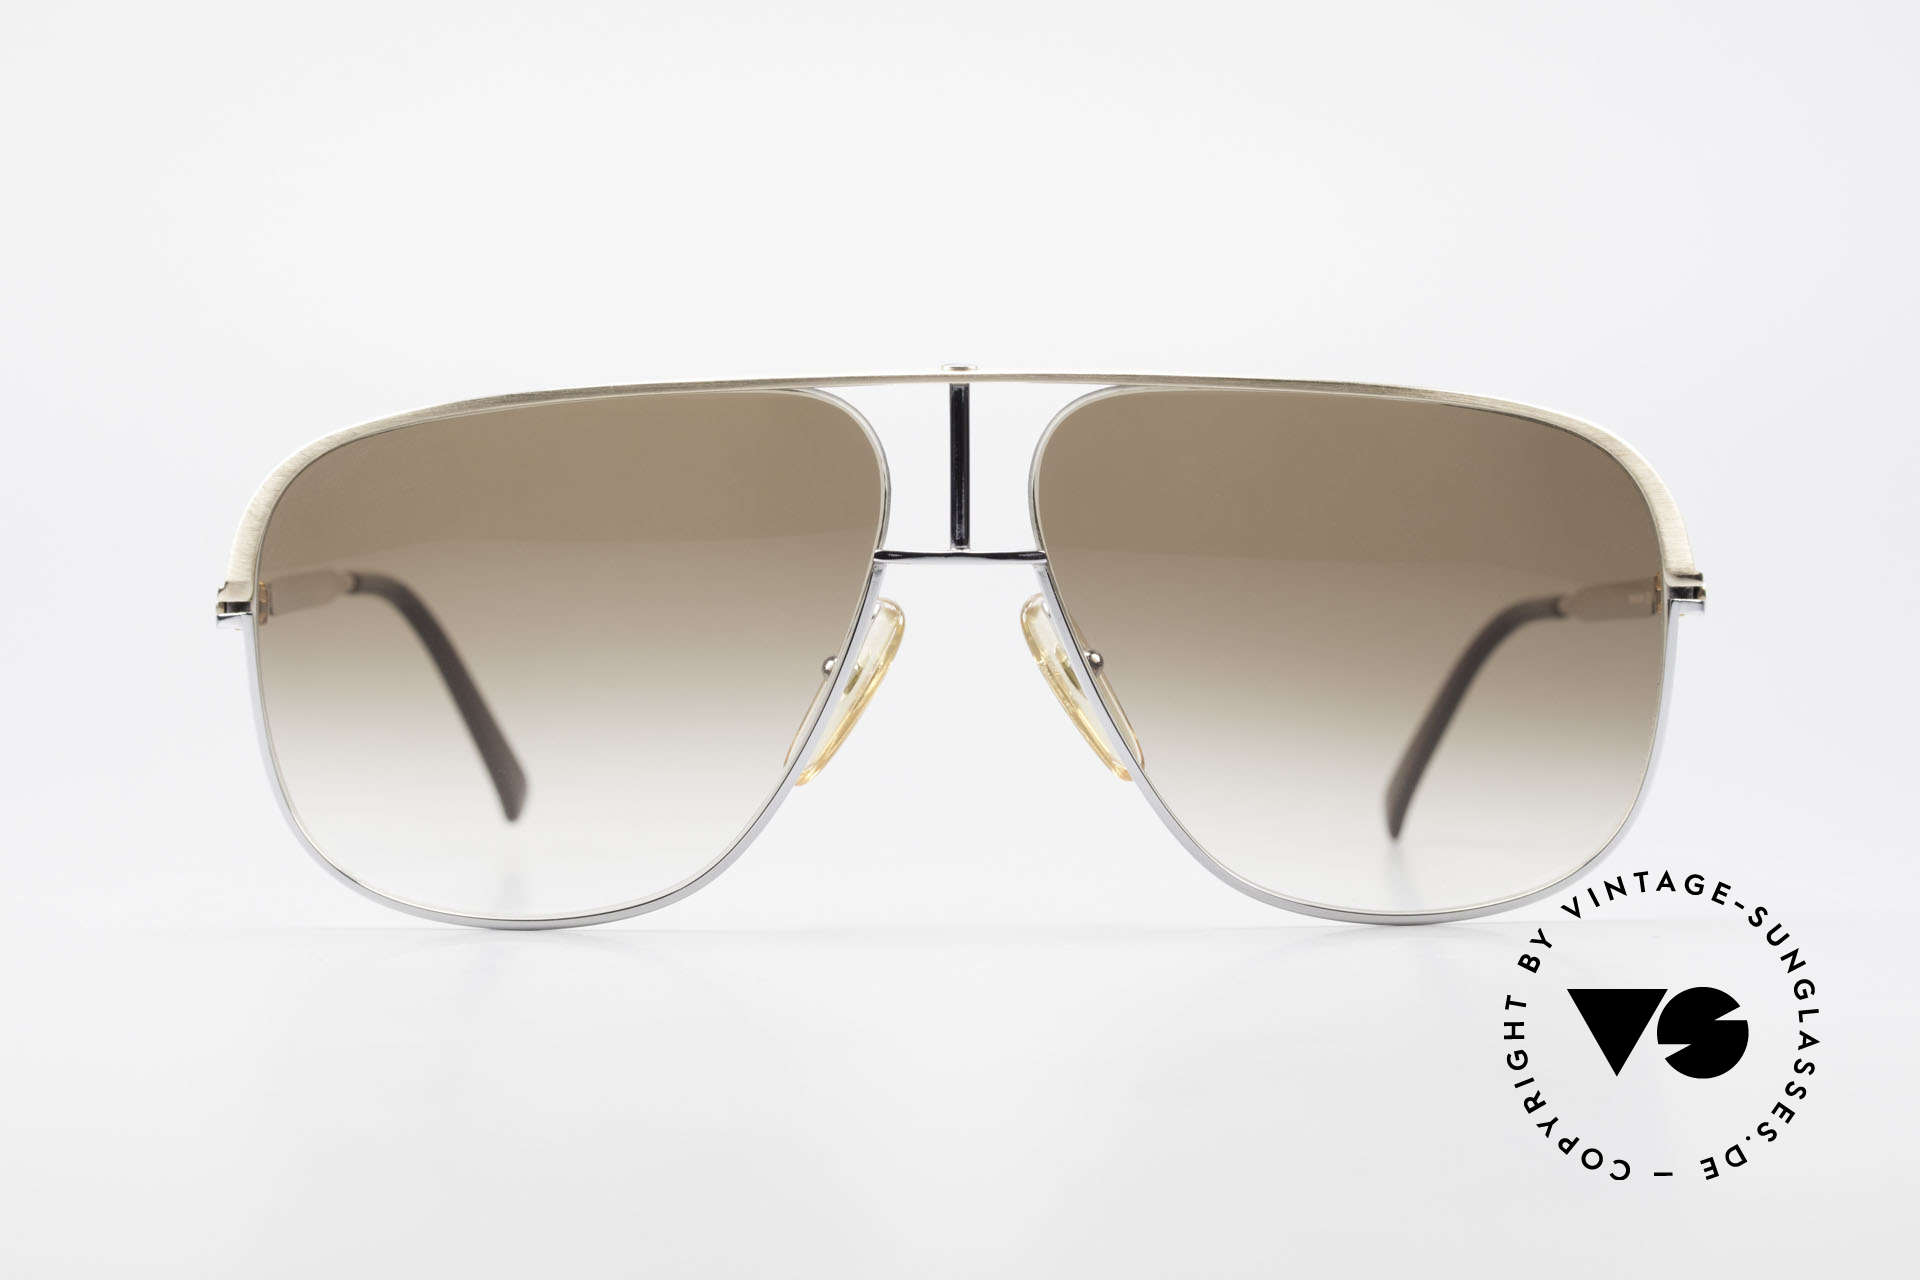 Dunhill 6019 80's Gentlemen Luxury Shades, this is the indisputable spearhead of sunglasses' quality, Made for Men